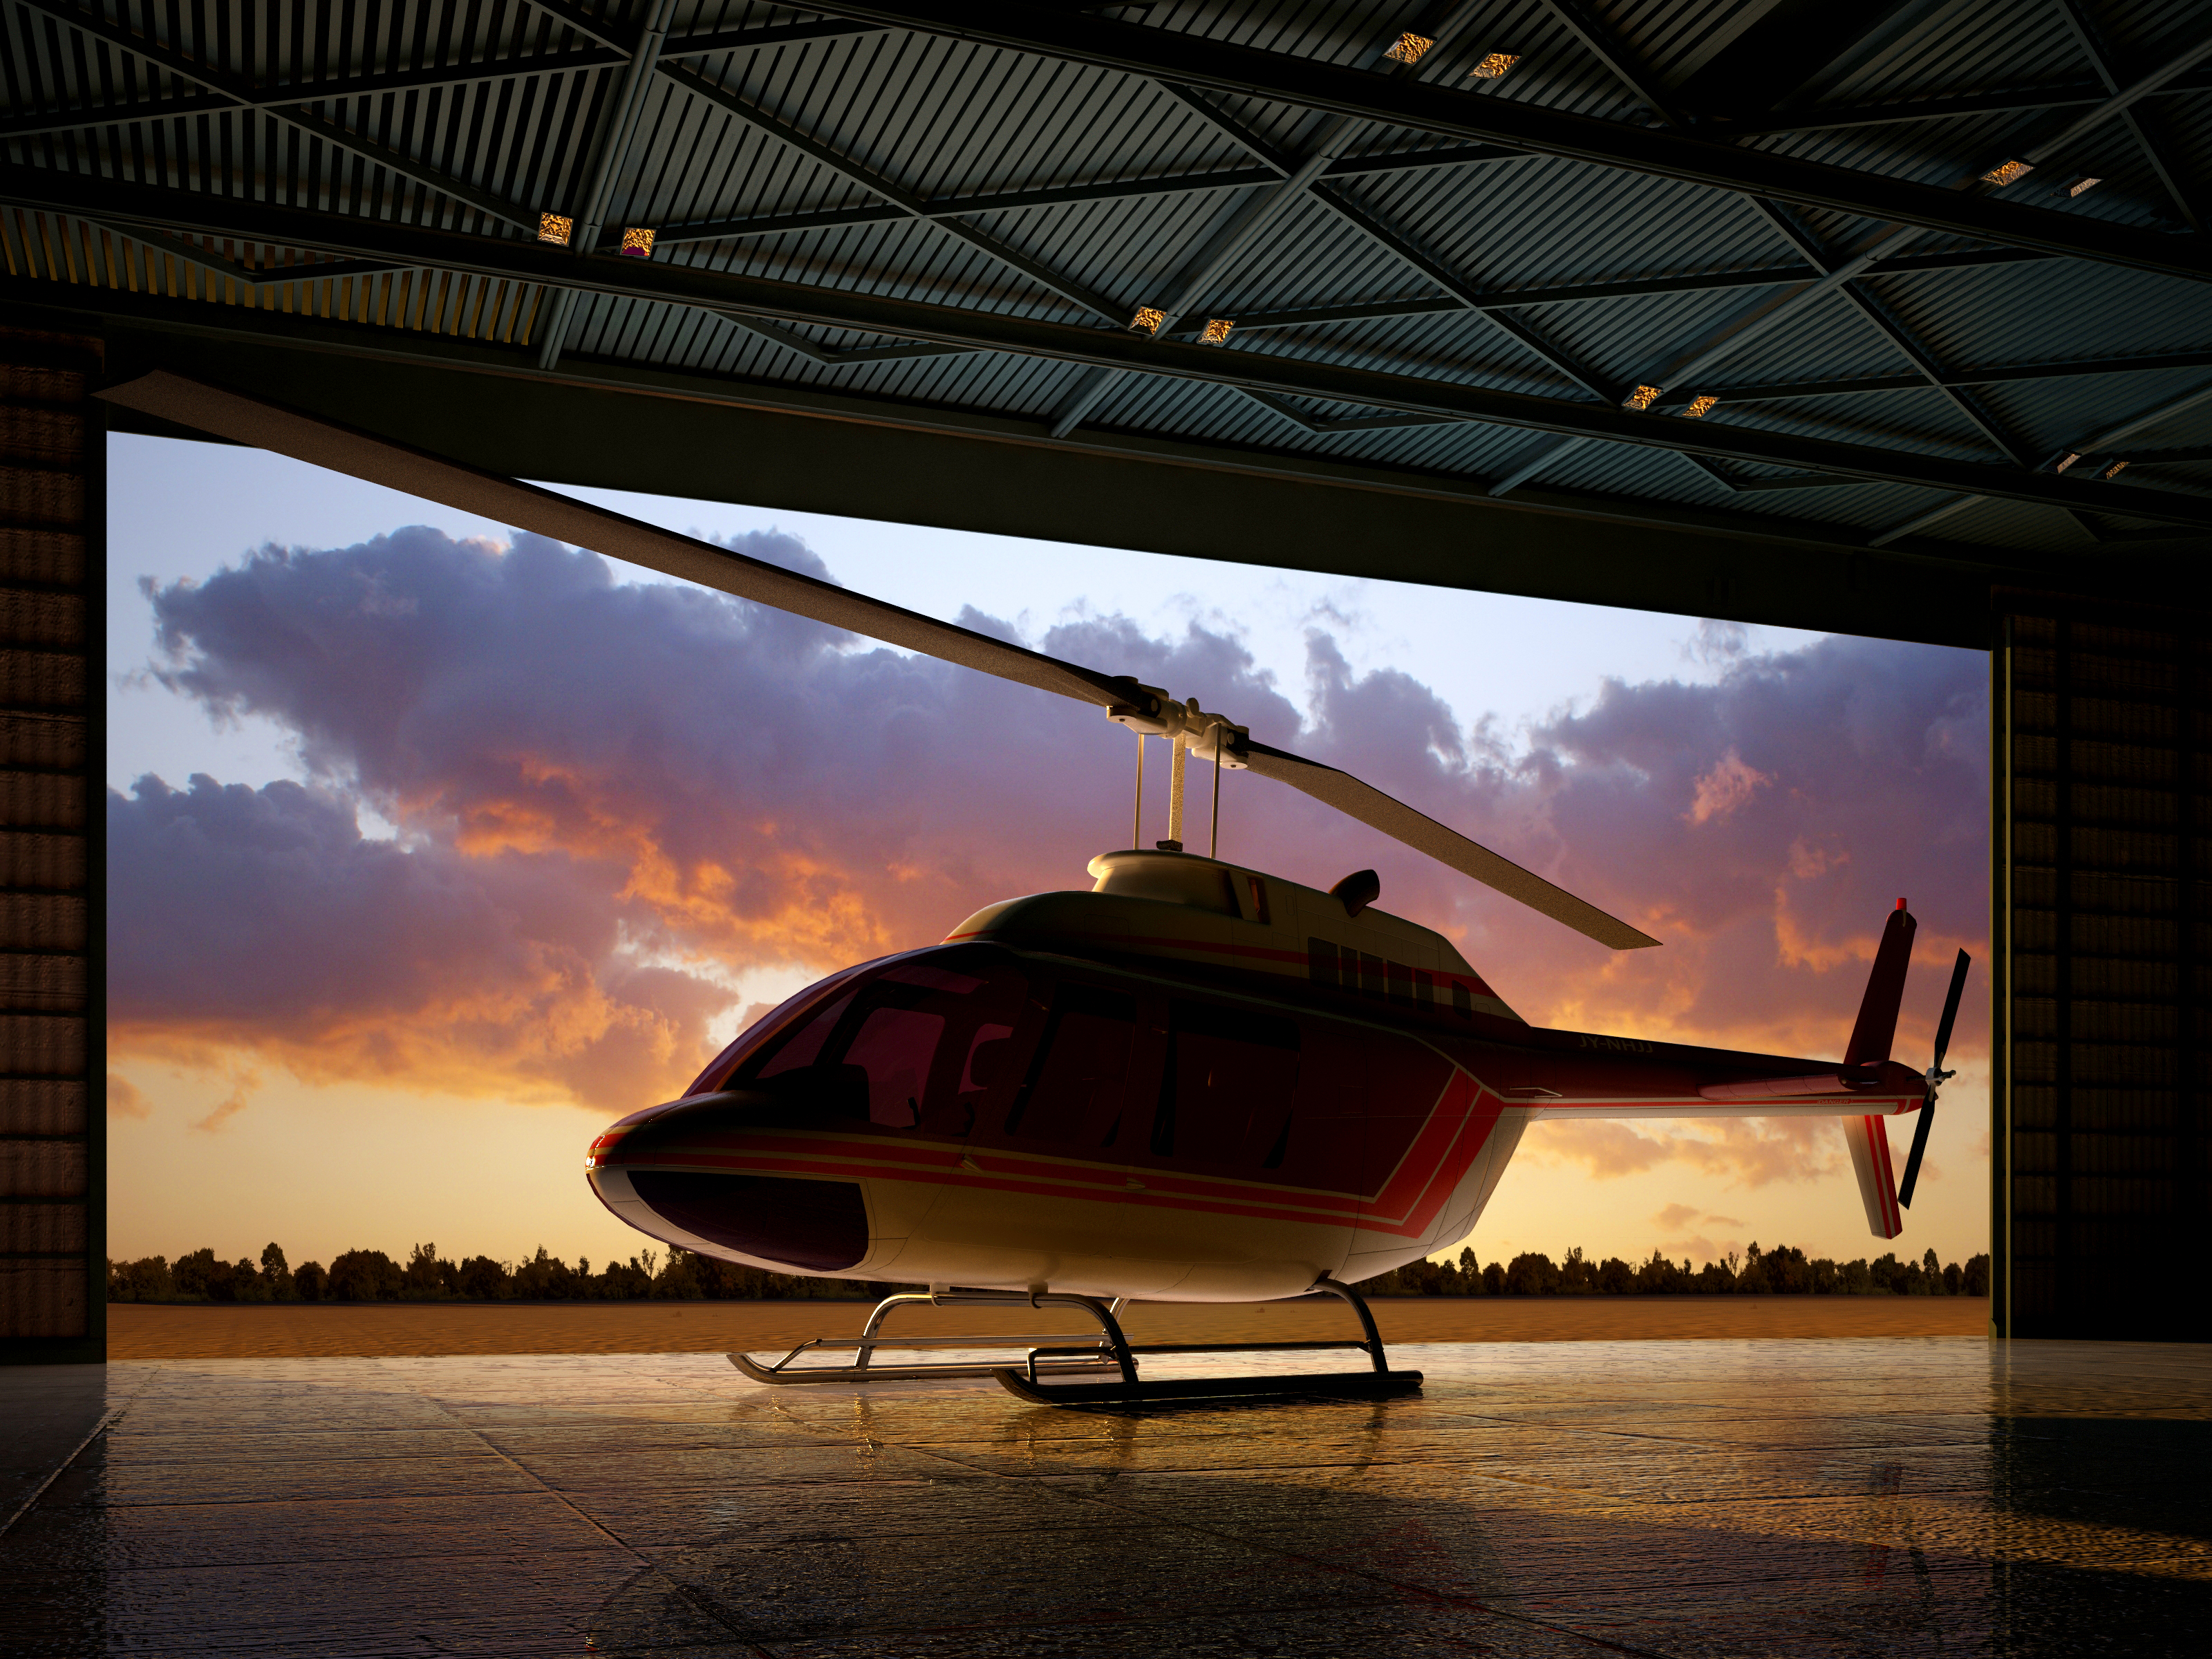 Icomera joins Research and Technology Programme to develop Mobile Communications for Helicopters